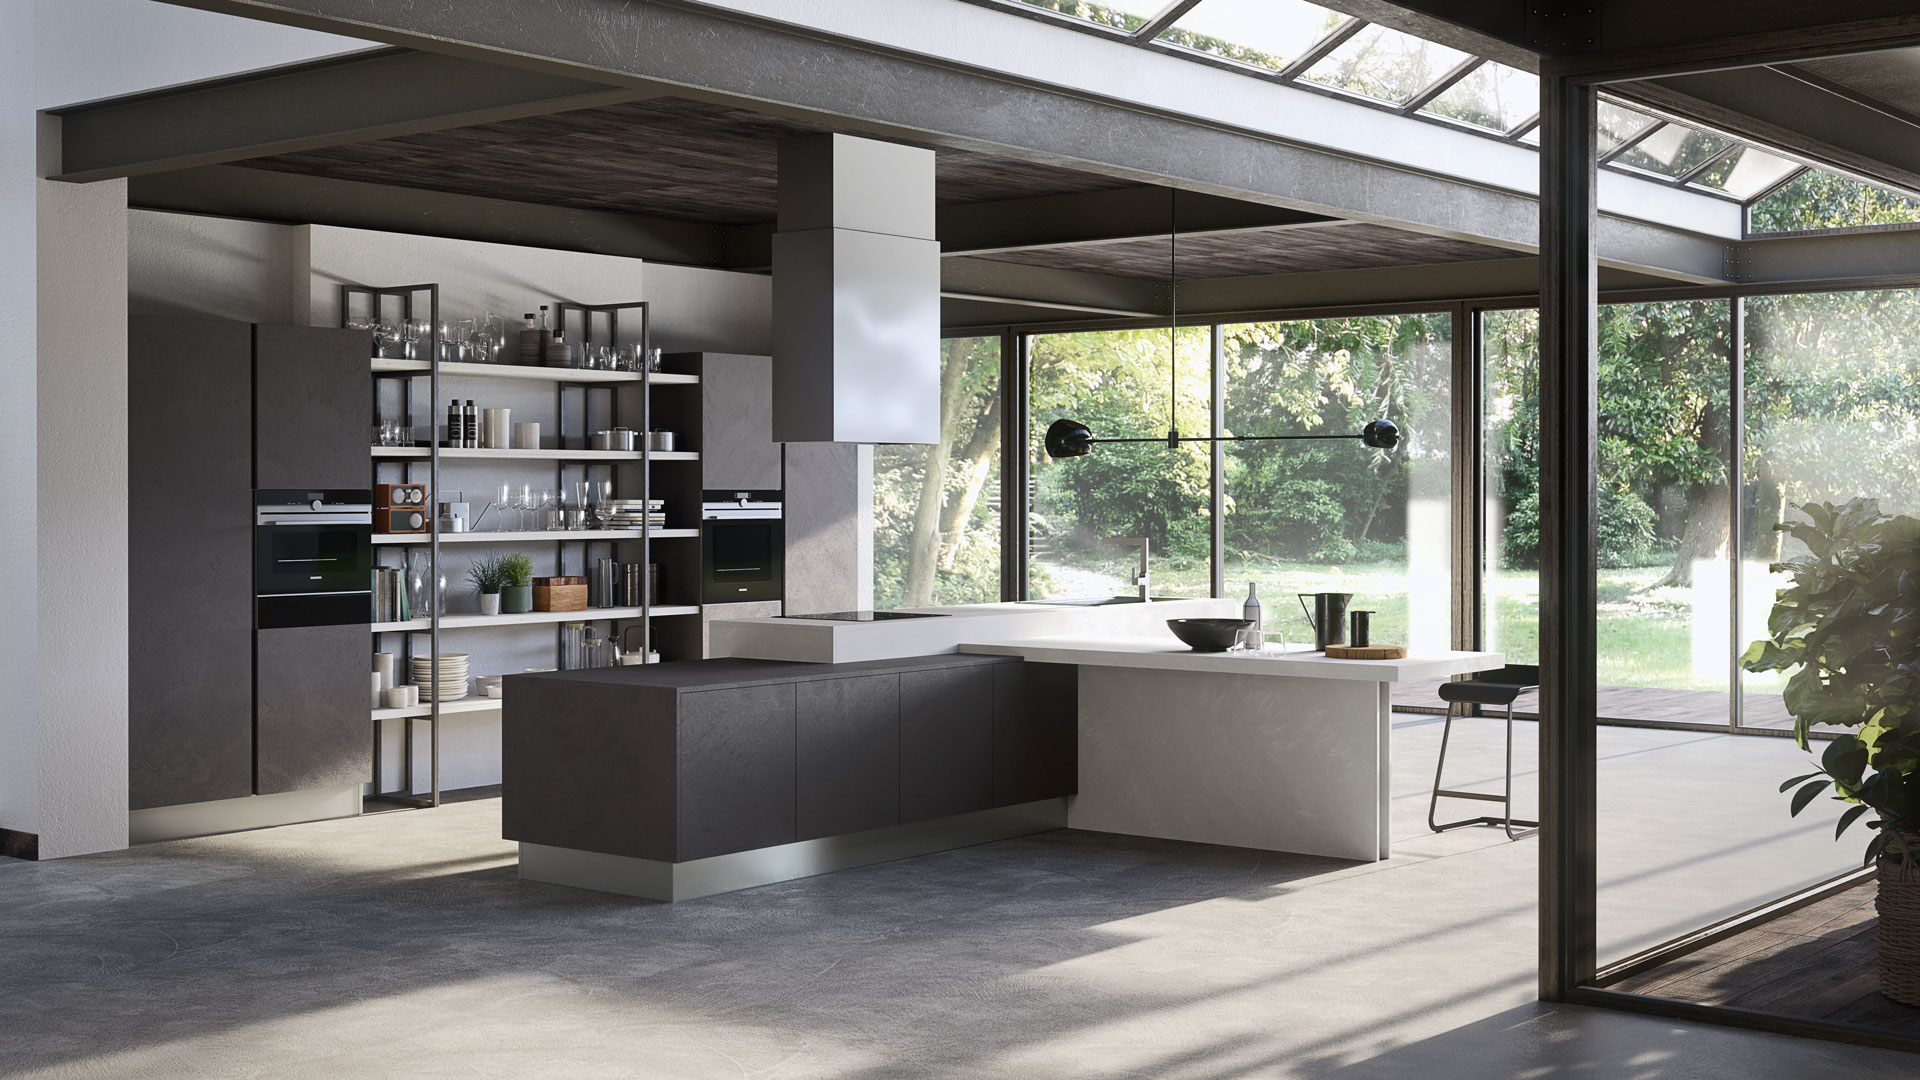 pedini-kitchen-eko